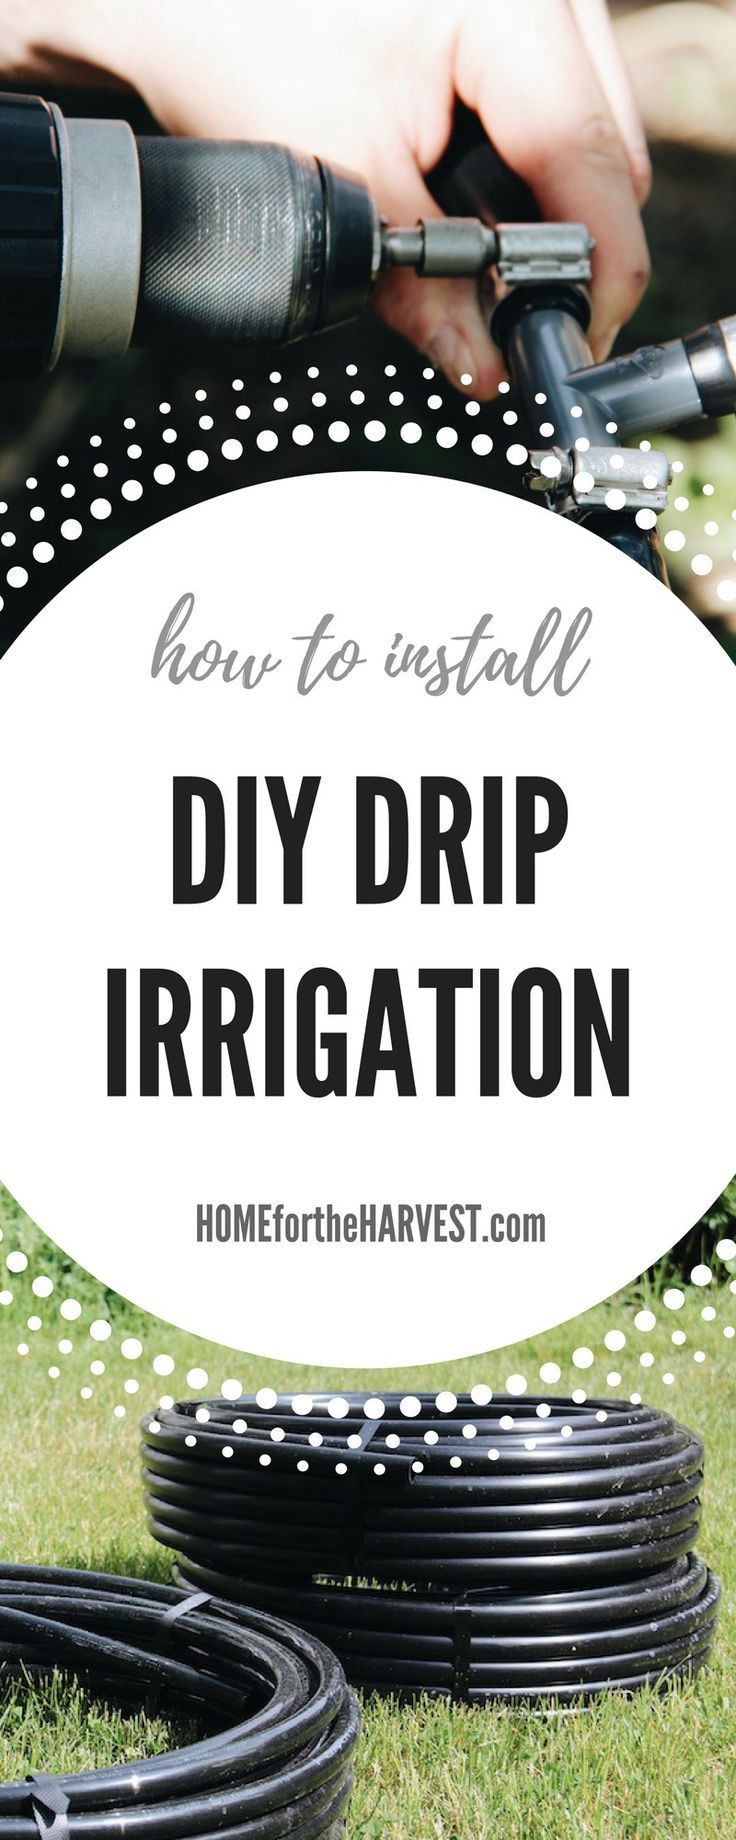 How to Install DIY Drip Irrigation - Tutorial and Free Printable | Home for the Harvest #savewater #savetime #dripirrigation #irrigation #diyirrigation #gardening #organicgardening #gardeningtutorial #yardwork #gardenproject